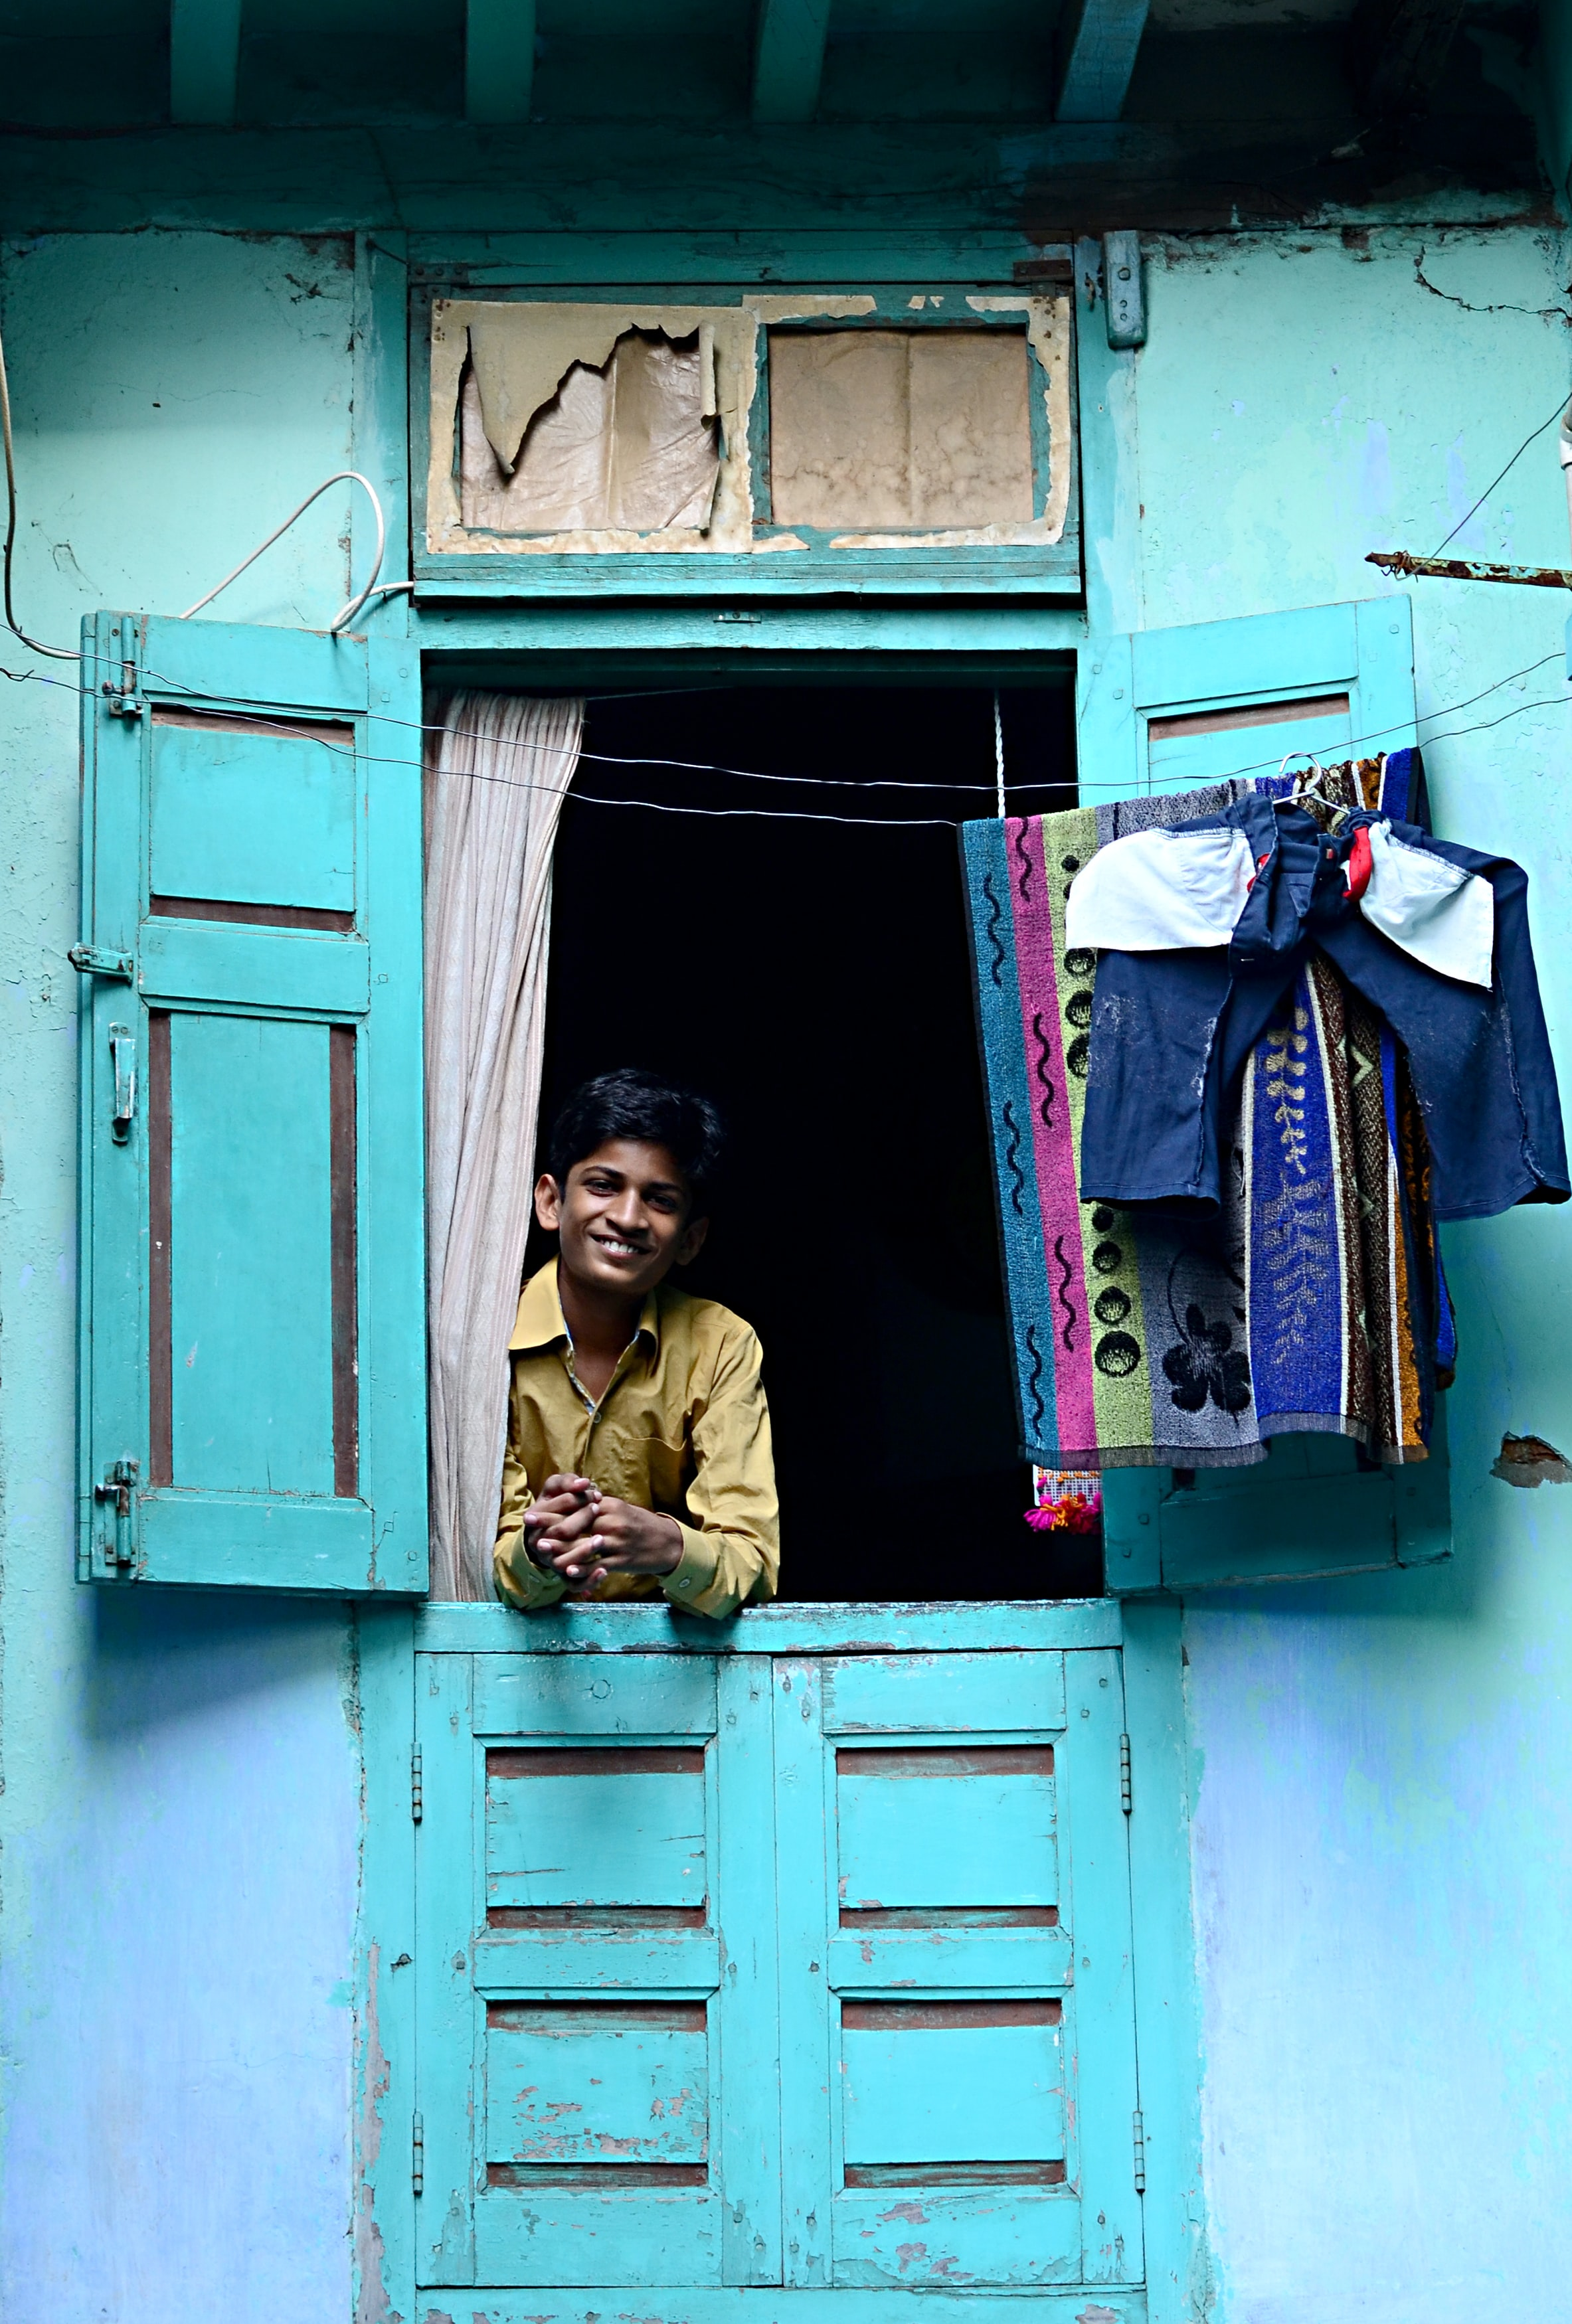 A smiling man leans out an open window in a bright turquoise house in Ahmedabad